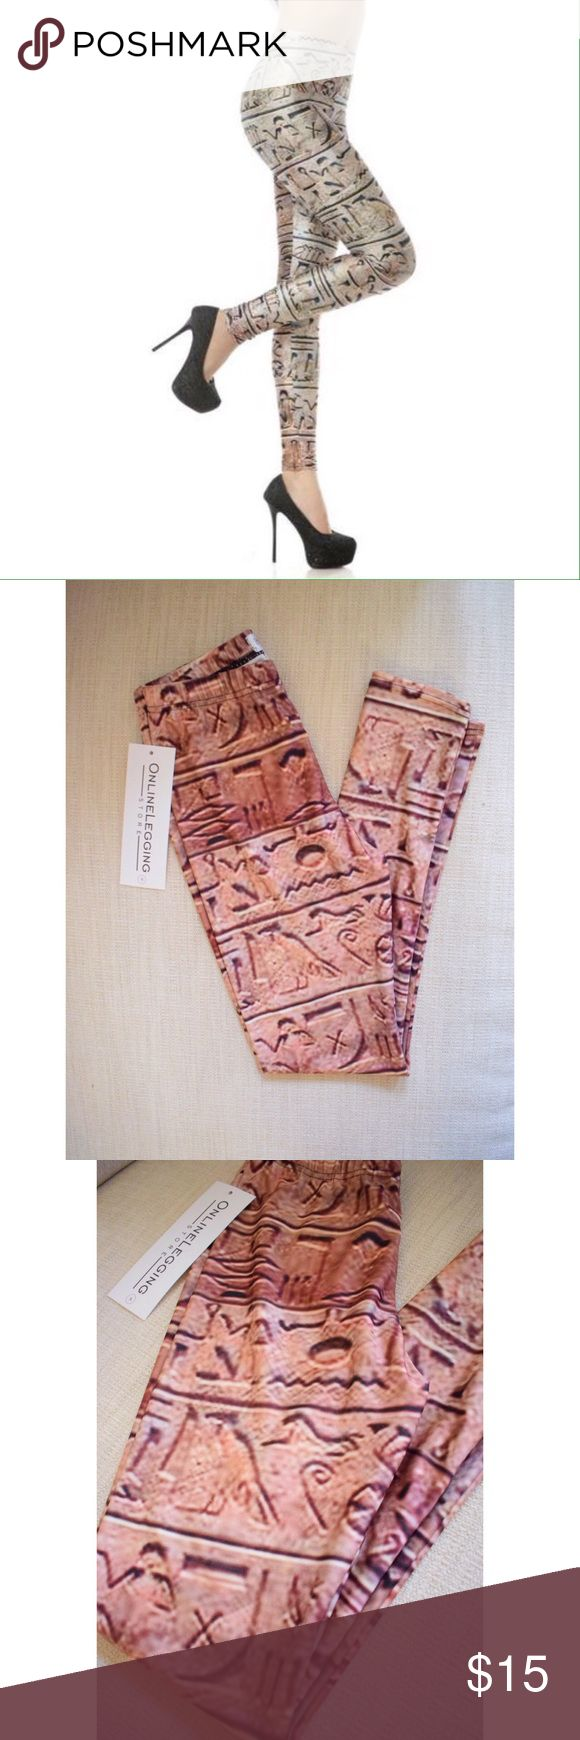 Shiny Egyptian Leggings Brand new, shiny, super cute Egyptian hieroglyphic leggings. Bought a ton of leggings but never wore some of them. Great quality and last forever. I use mine for yoga and also when I go out. They are more orange-ish than tan. My photos do the color more justice. Online Legging Store Pants Leggings